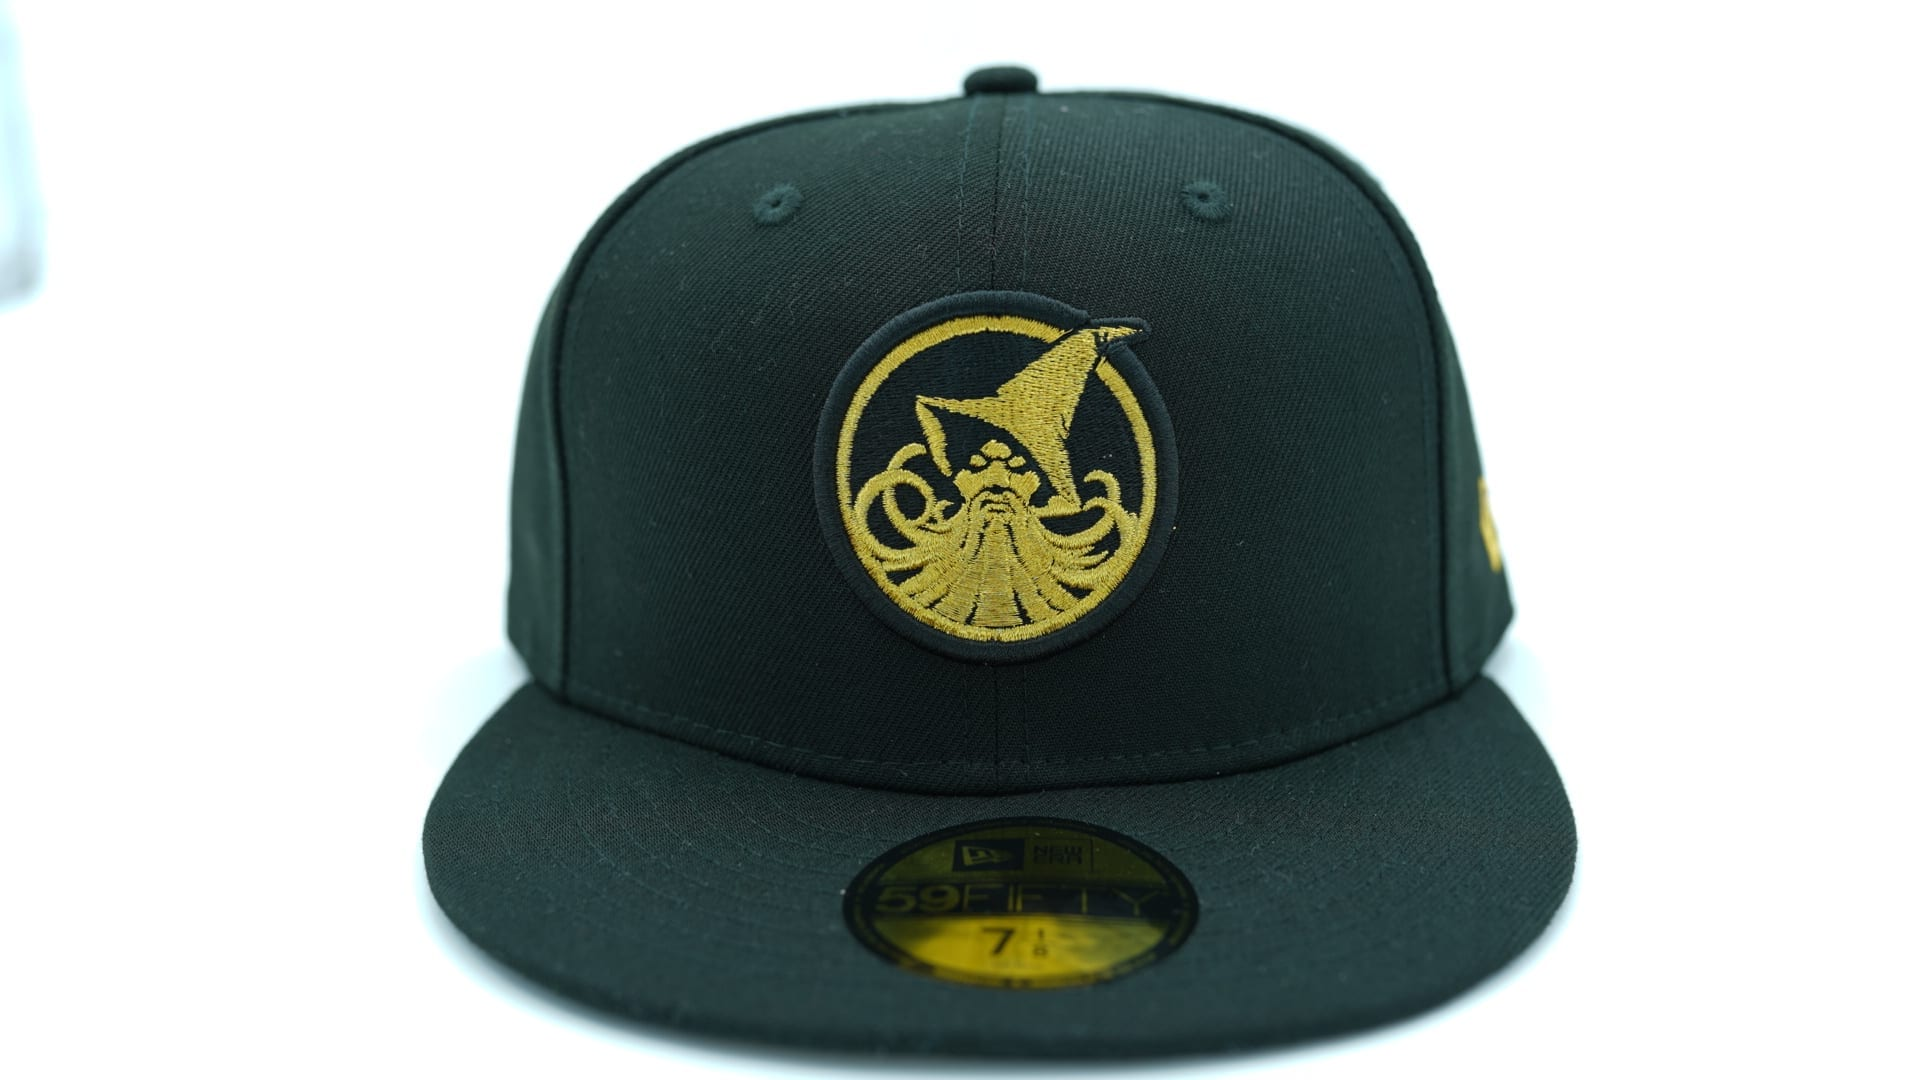 los angeles clippers heather profile high crown fitted baseball cap  mitchell and ness nba e0a3c311d989